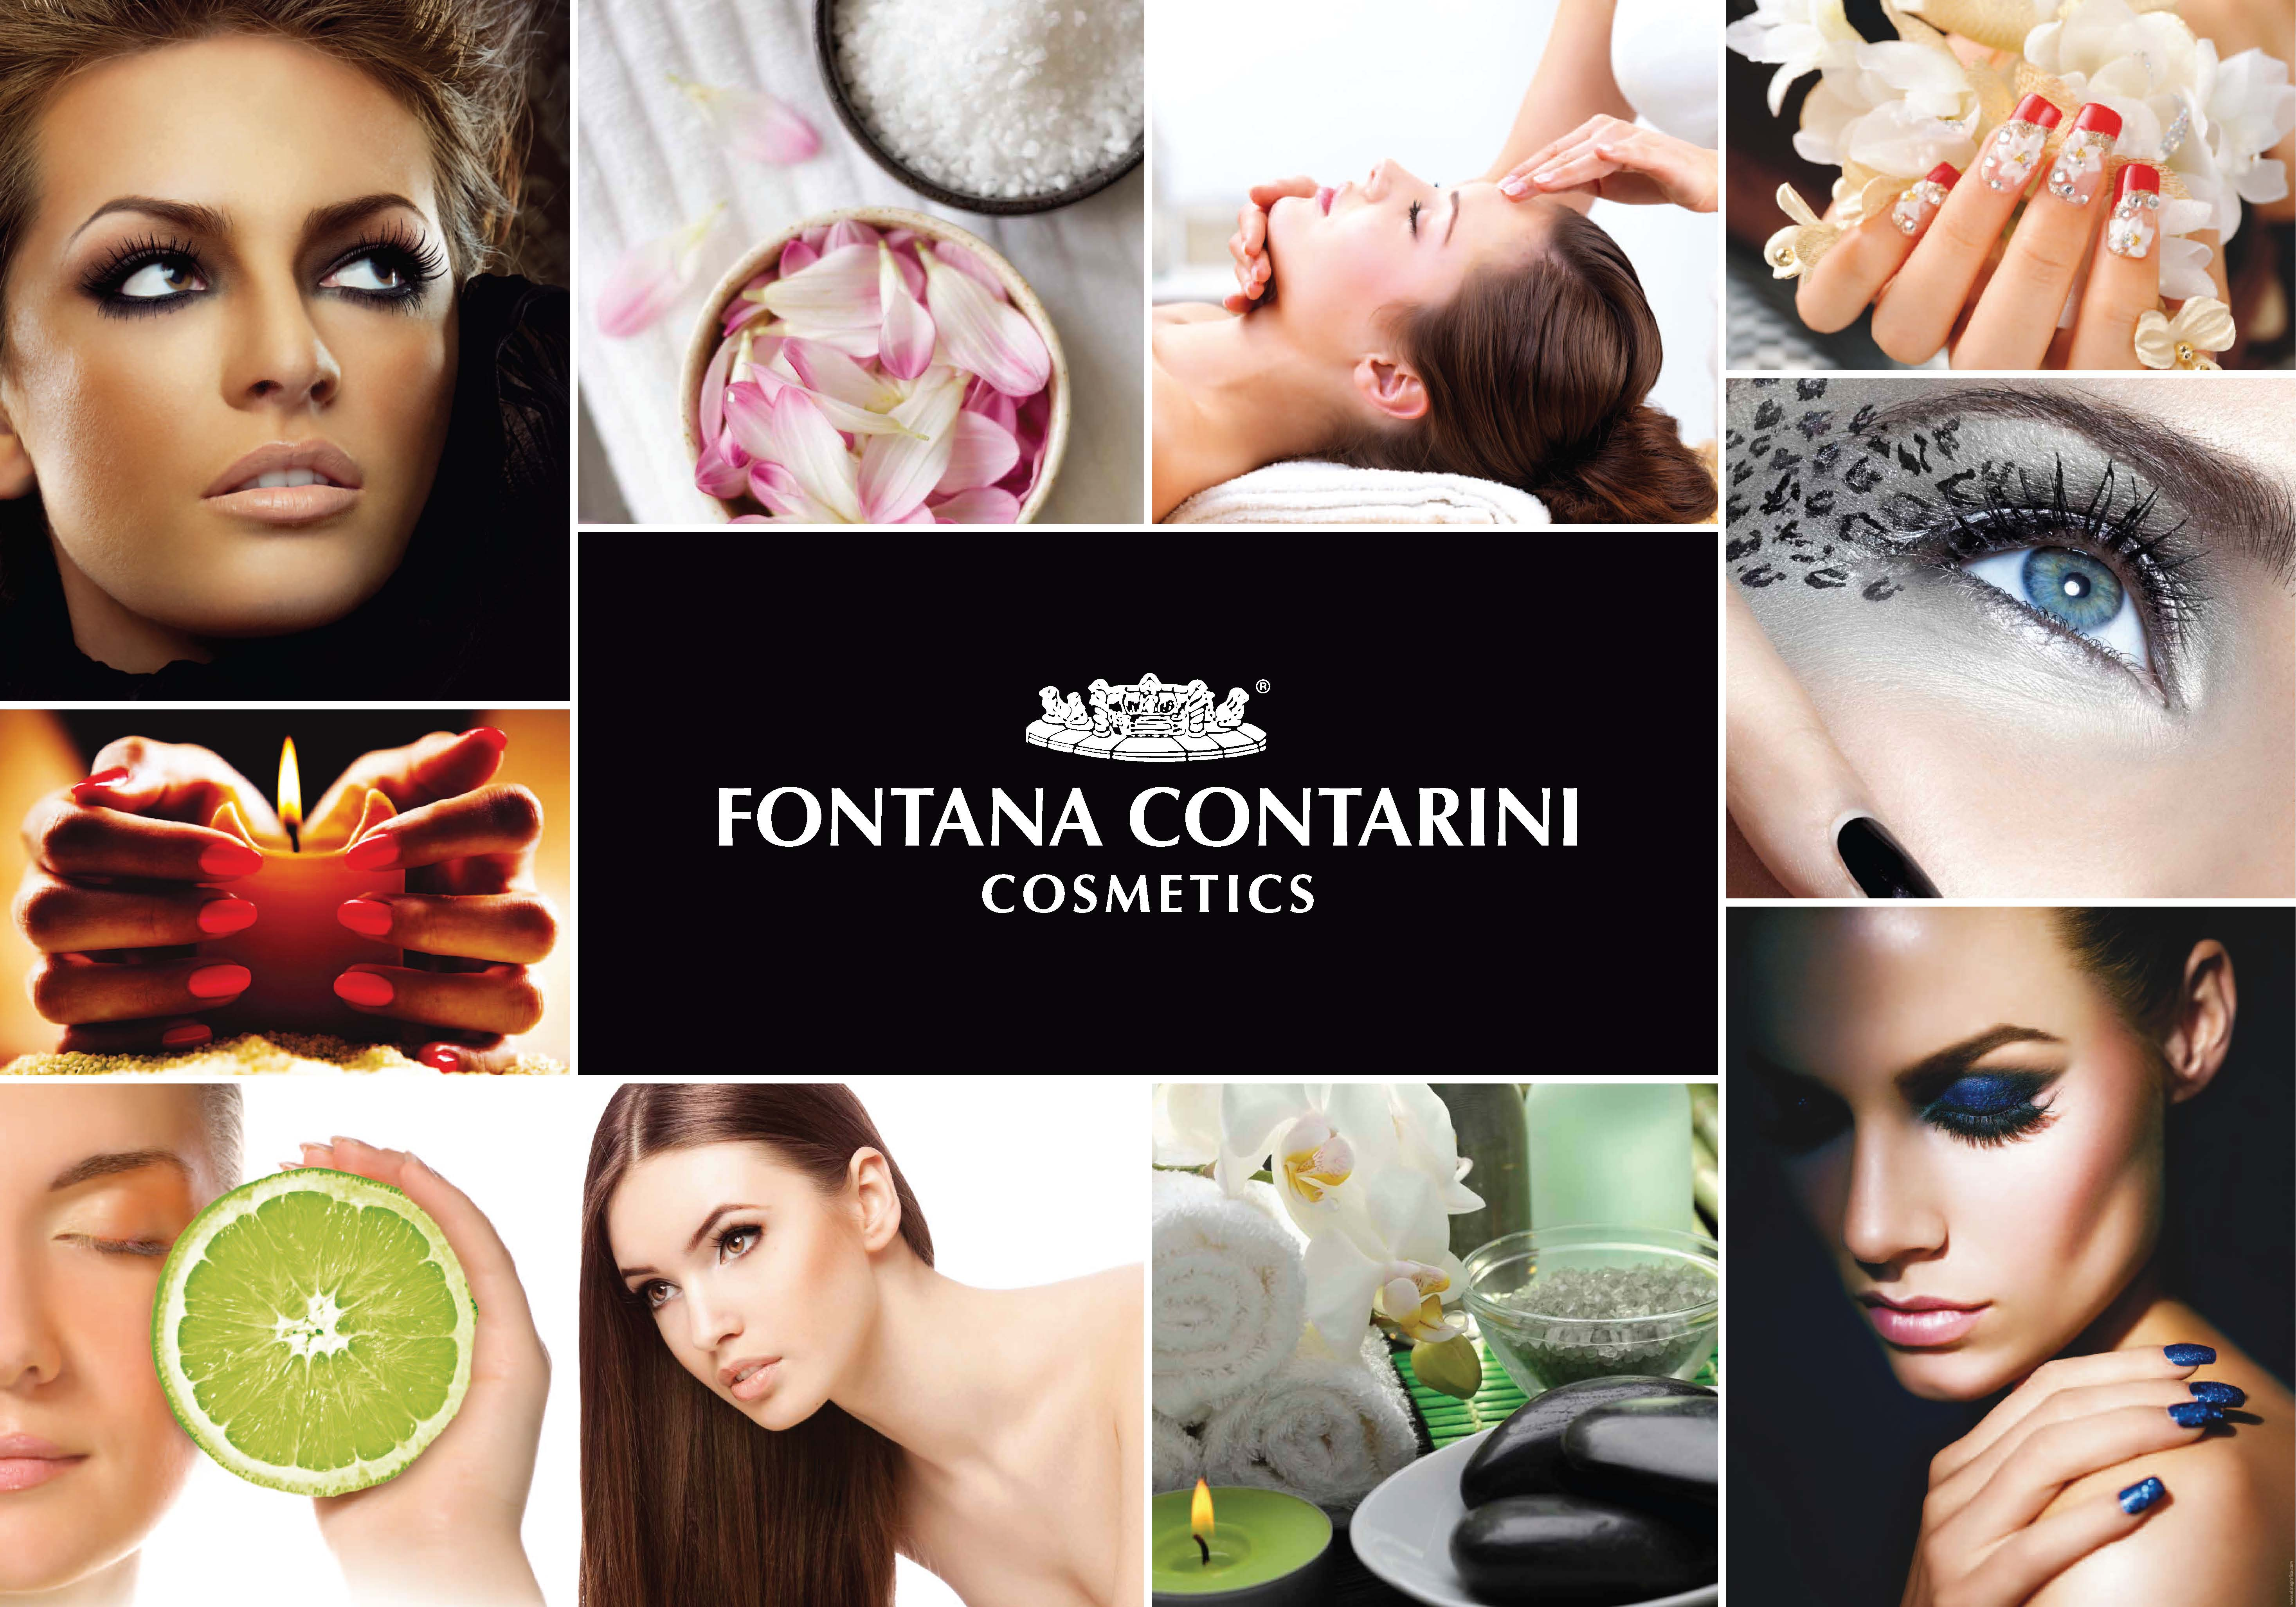 FONTANA CONTARINI MAKE-UP AL 50% per cambio linea